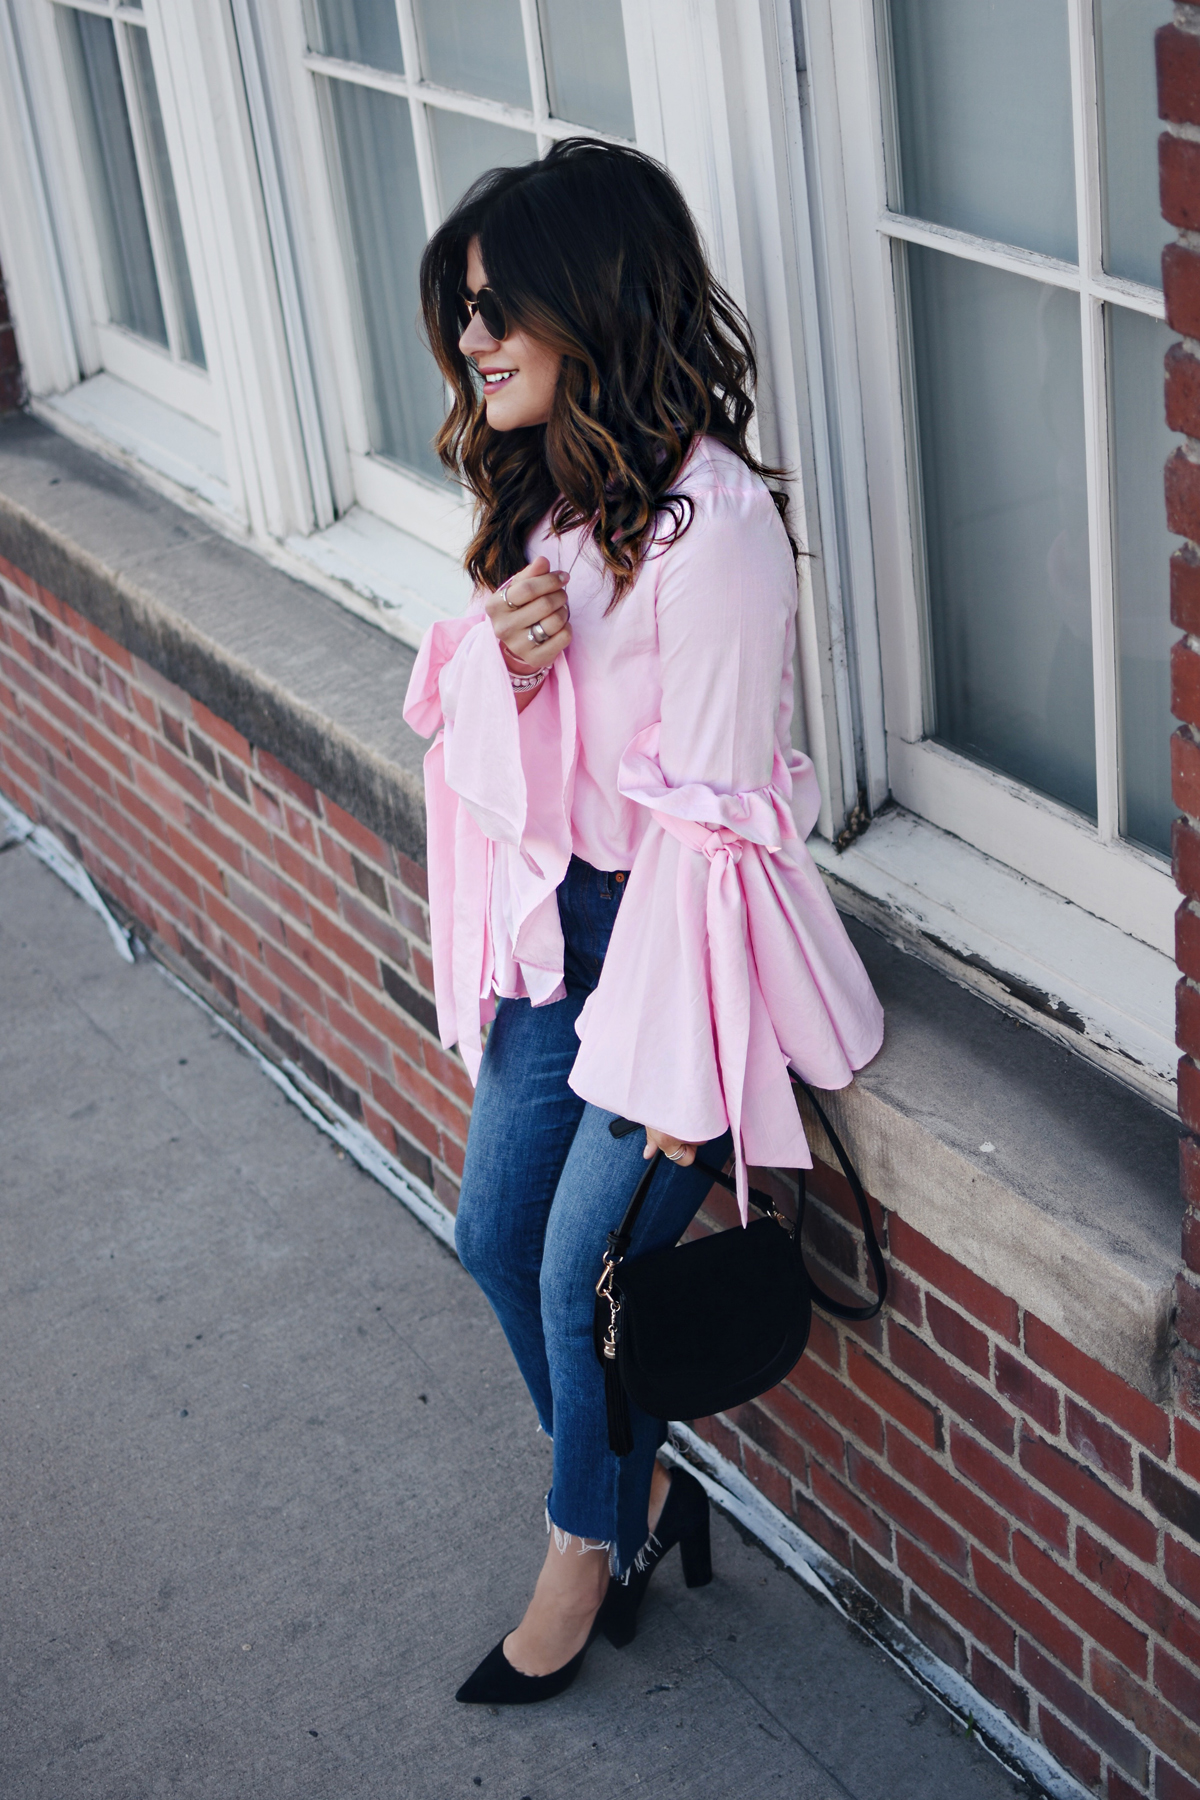 Carolina Hellal of Chic Talk wearing a Chicwish bell sleeve top, Madewell jeans, Steve Madden black pumps, Rebecca Minkoff black purse and Rayban Sunglasses